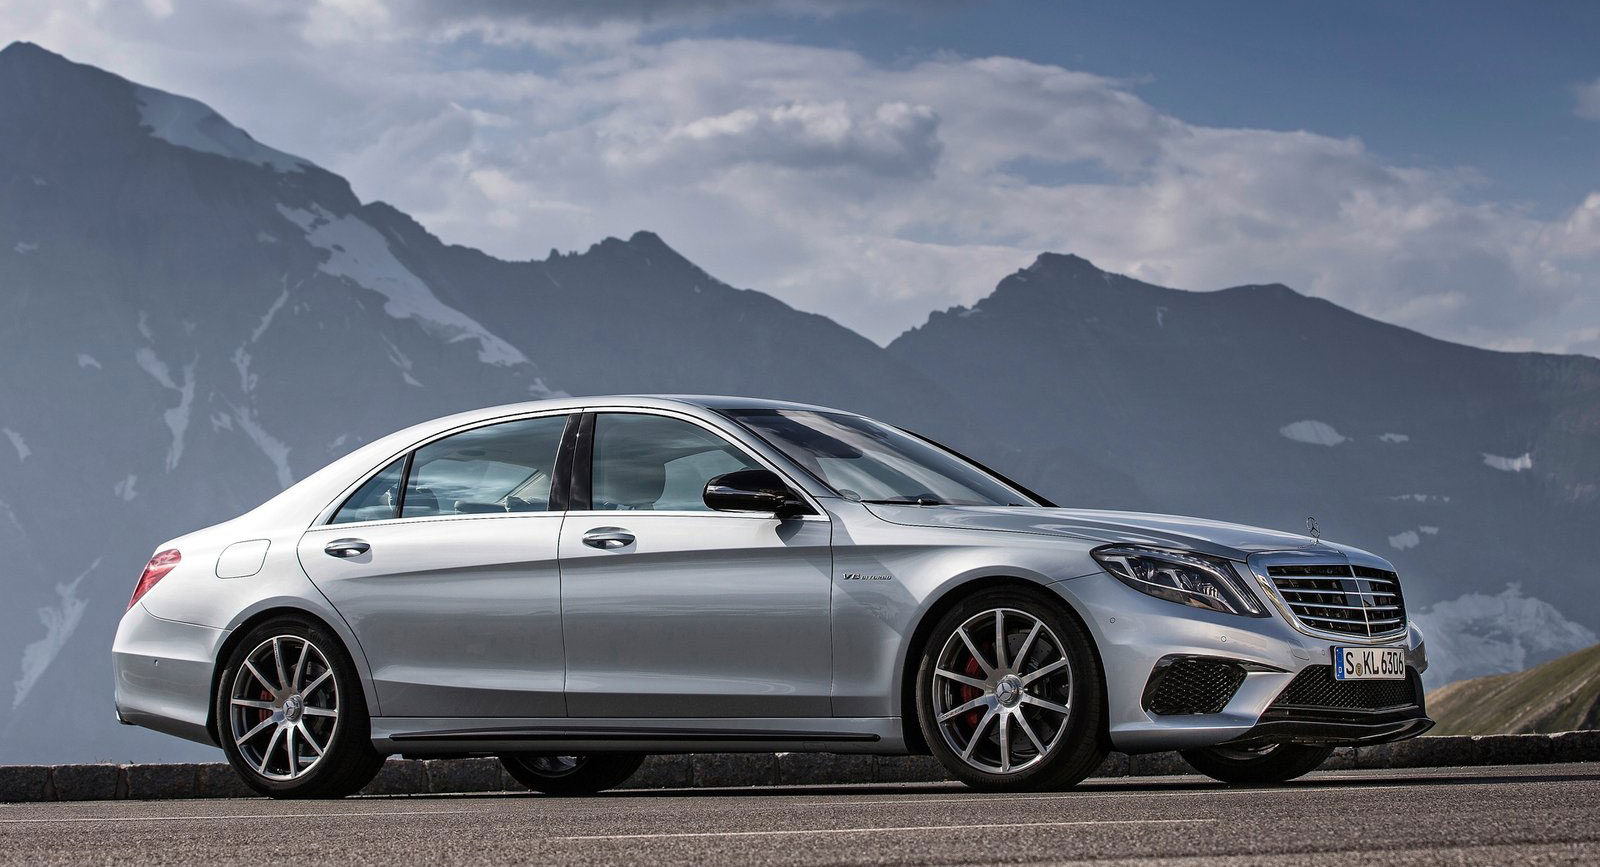 Mercedes benz s 63 amg like a boss in austria image 201921 for Mercedes benz austria